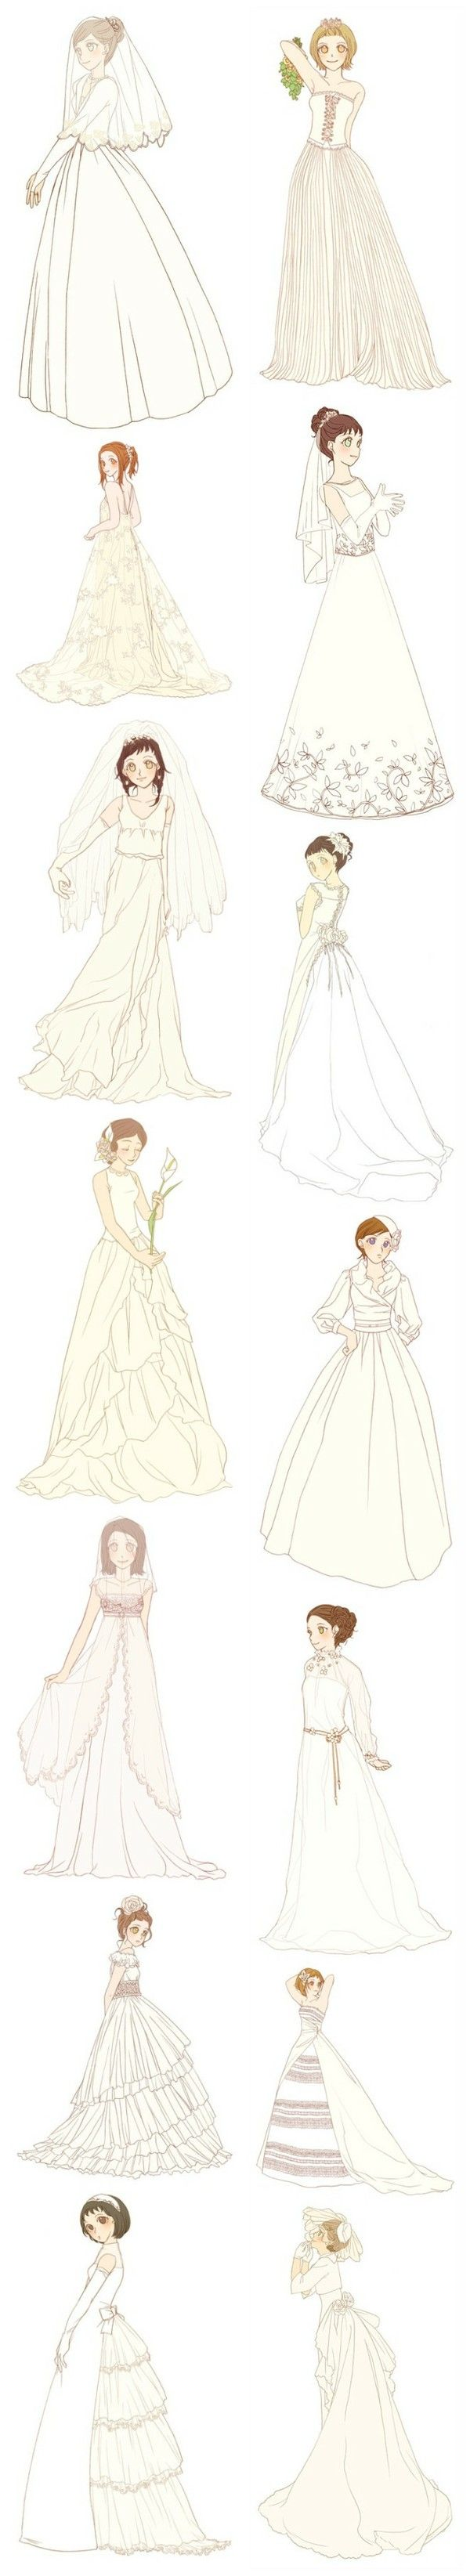 Anime girls wearing wedding dresses / gowns - Reference for Artists ...